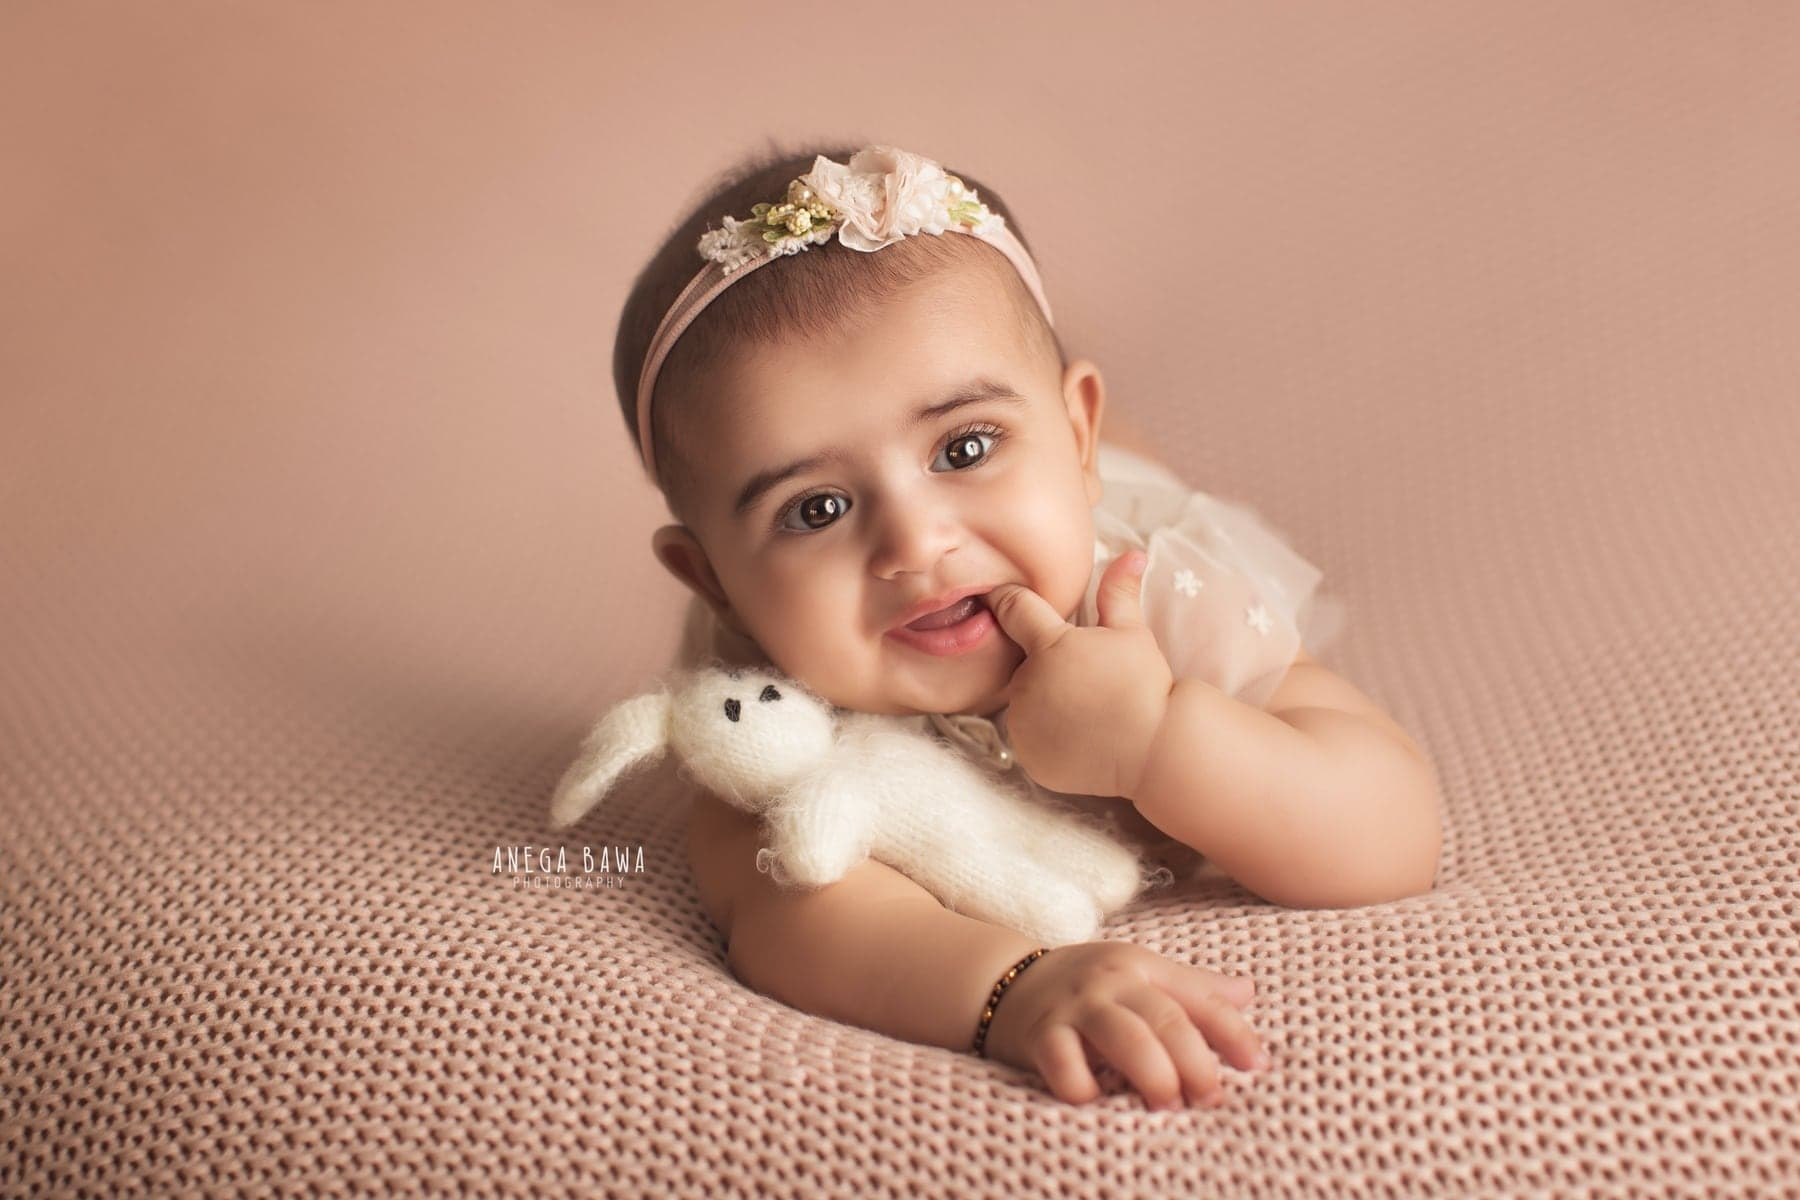 242106-beige-background-baby-photography-delhi-5-6-7-months-baby-photoshoot-gurgaon-anega-bawa